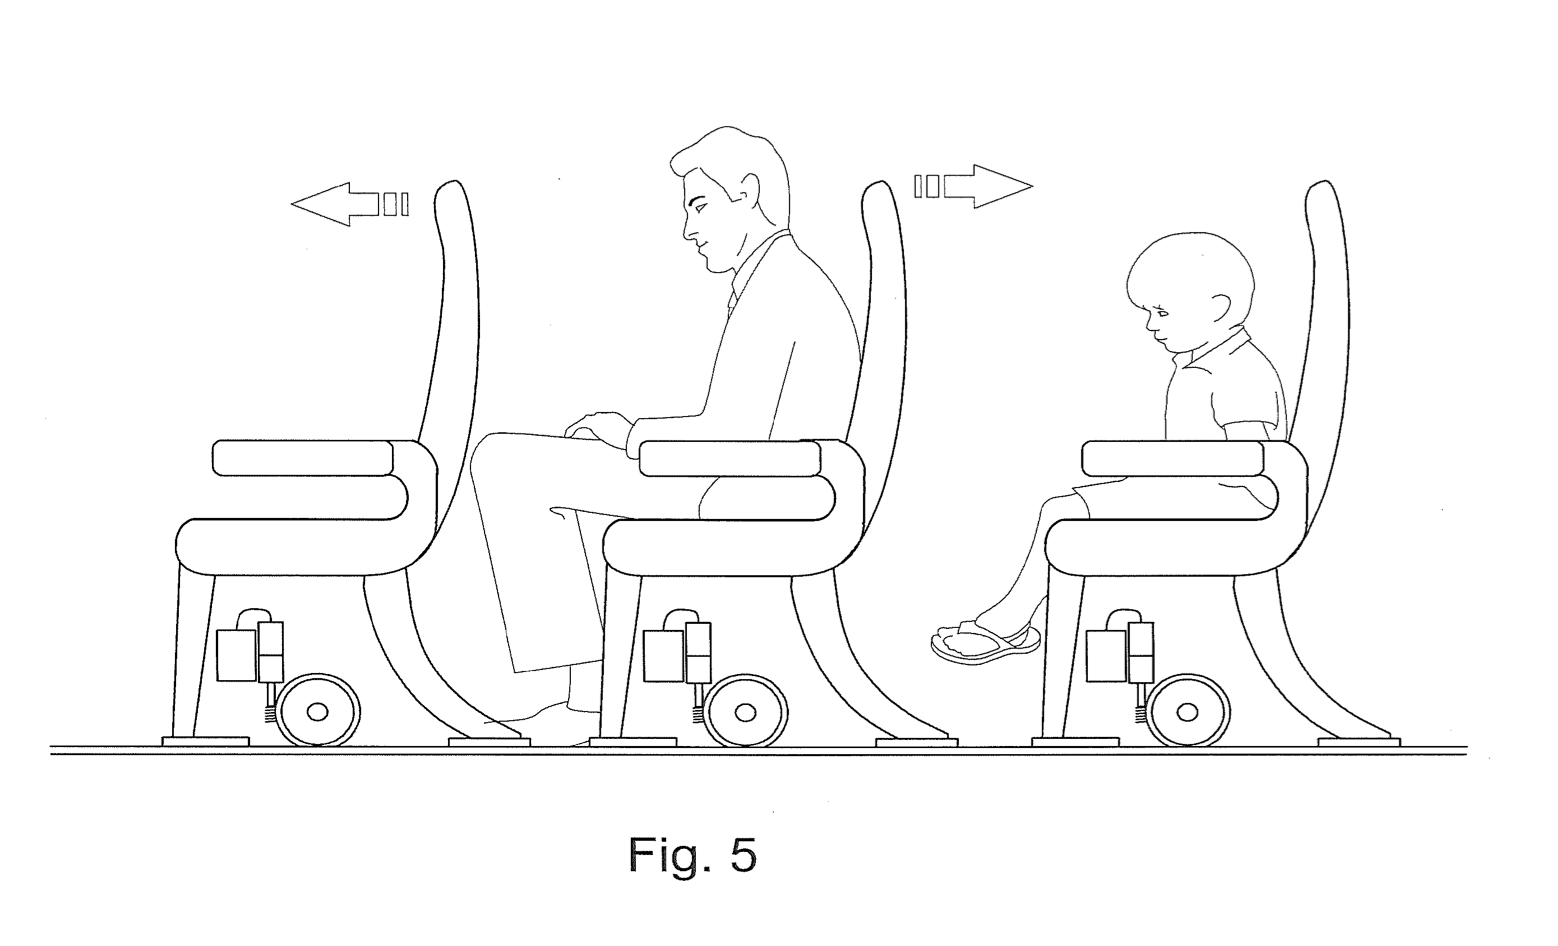 Awe Inspiring Patent Would Have Airlines Sort Passengers By Height Then Bralicious Painted Fabric Chair Ideas Braliciousco